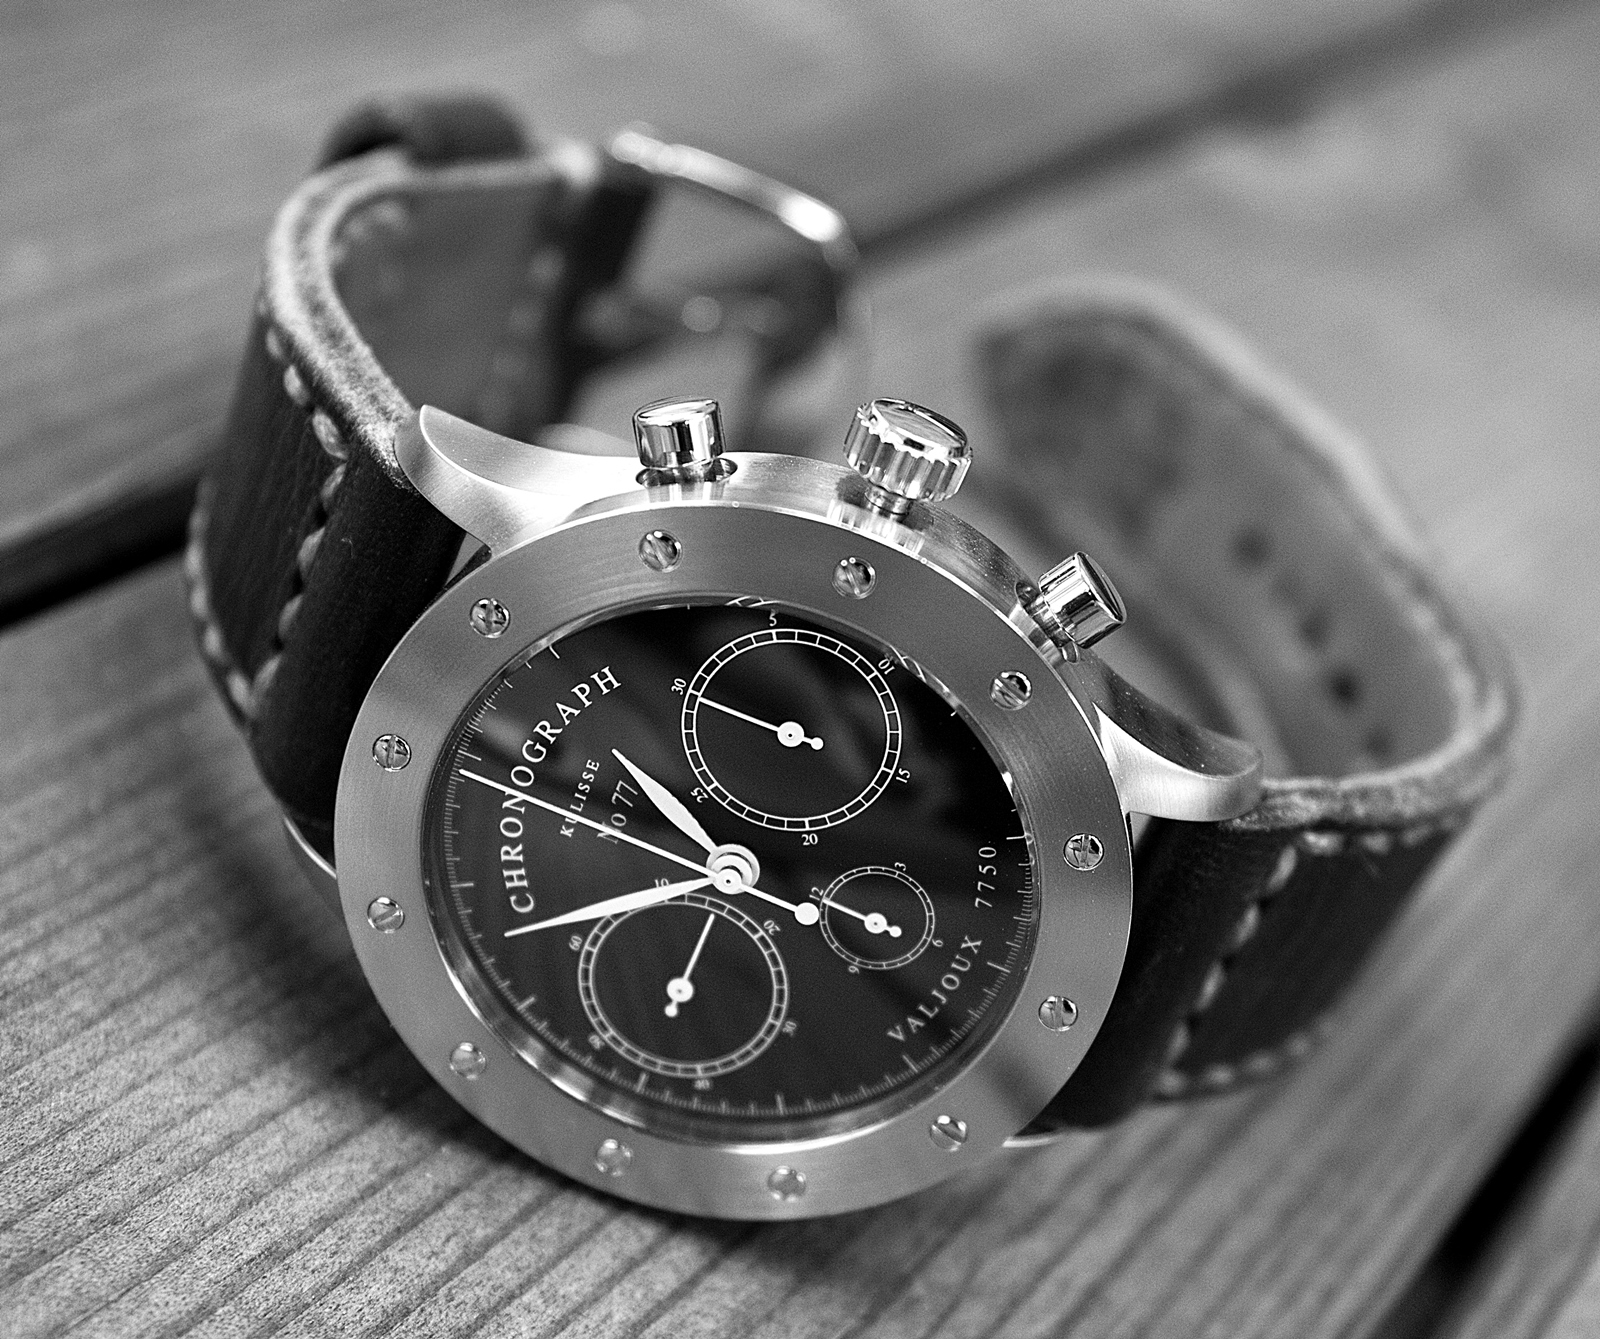 this review pro seadiver worn wound watches schauer watch seatime stowa prodiver post images from